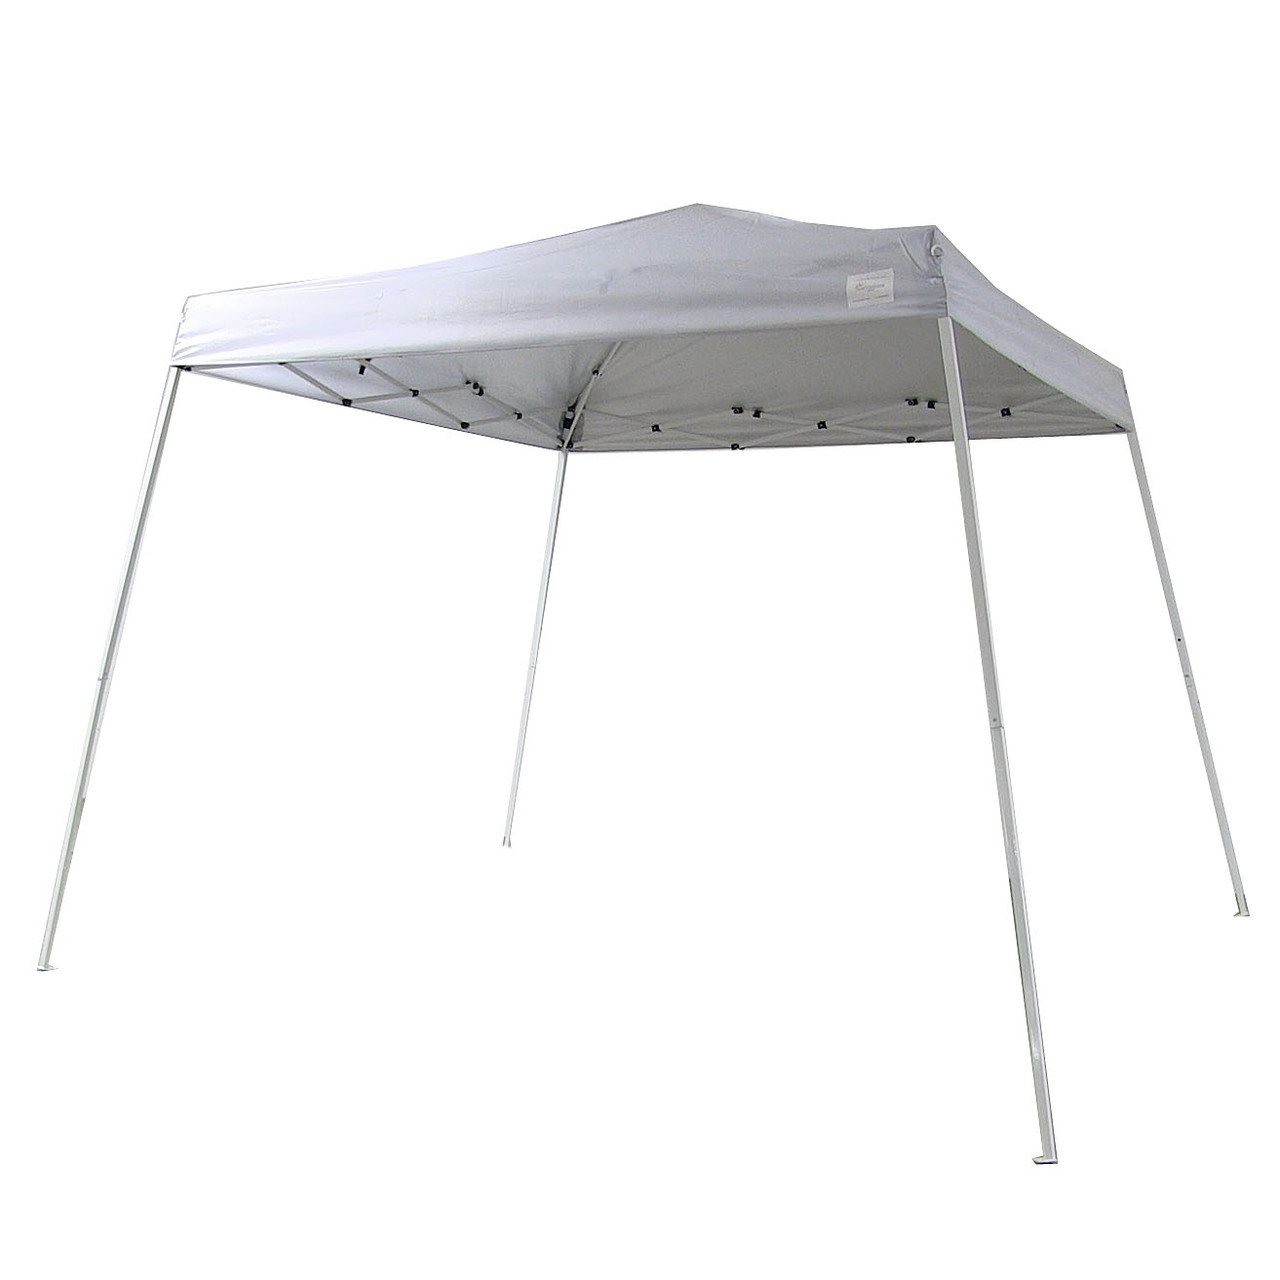 Sunnydaze Quick-Up Canopy 8 Foot x 8 Foot Top 10 Foot x 10 Foot Ground Slant Leg with Carrying Bag, White